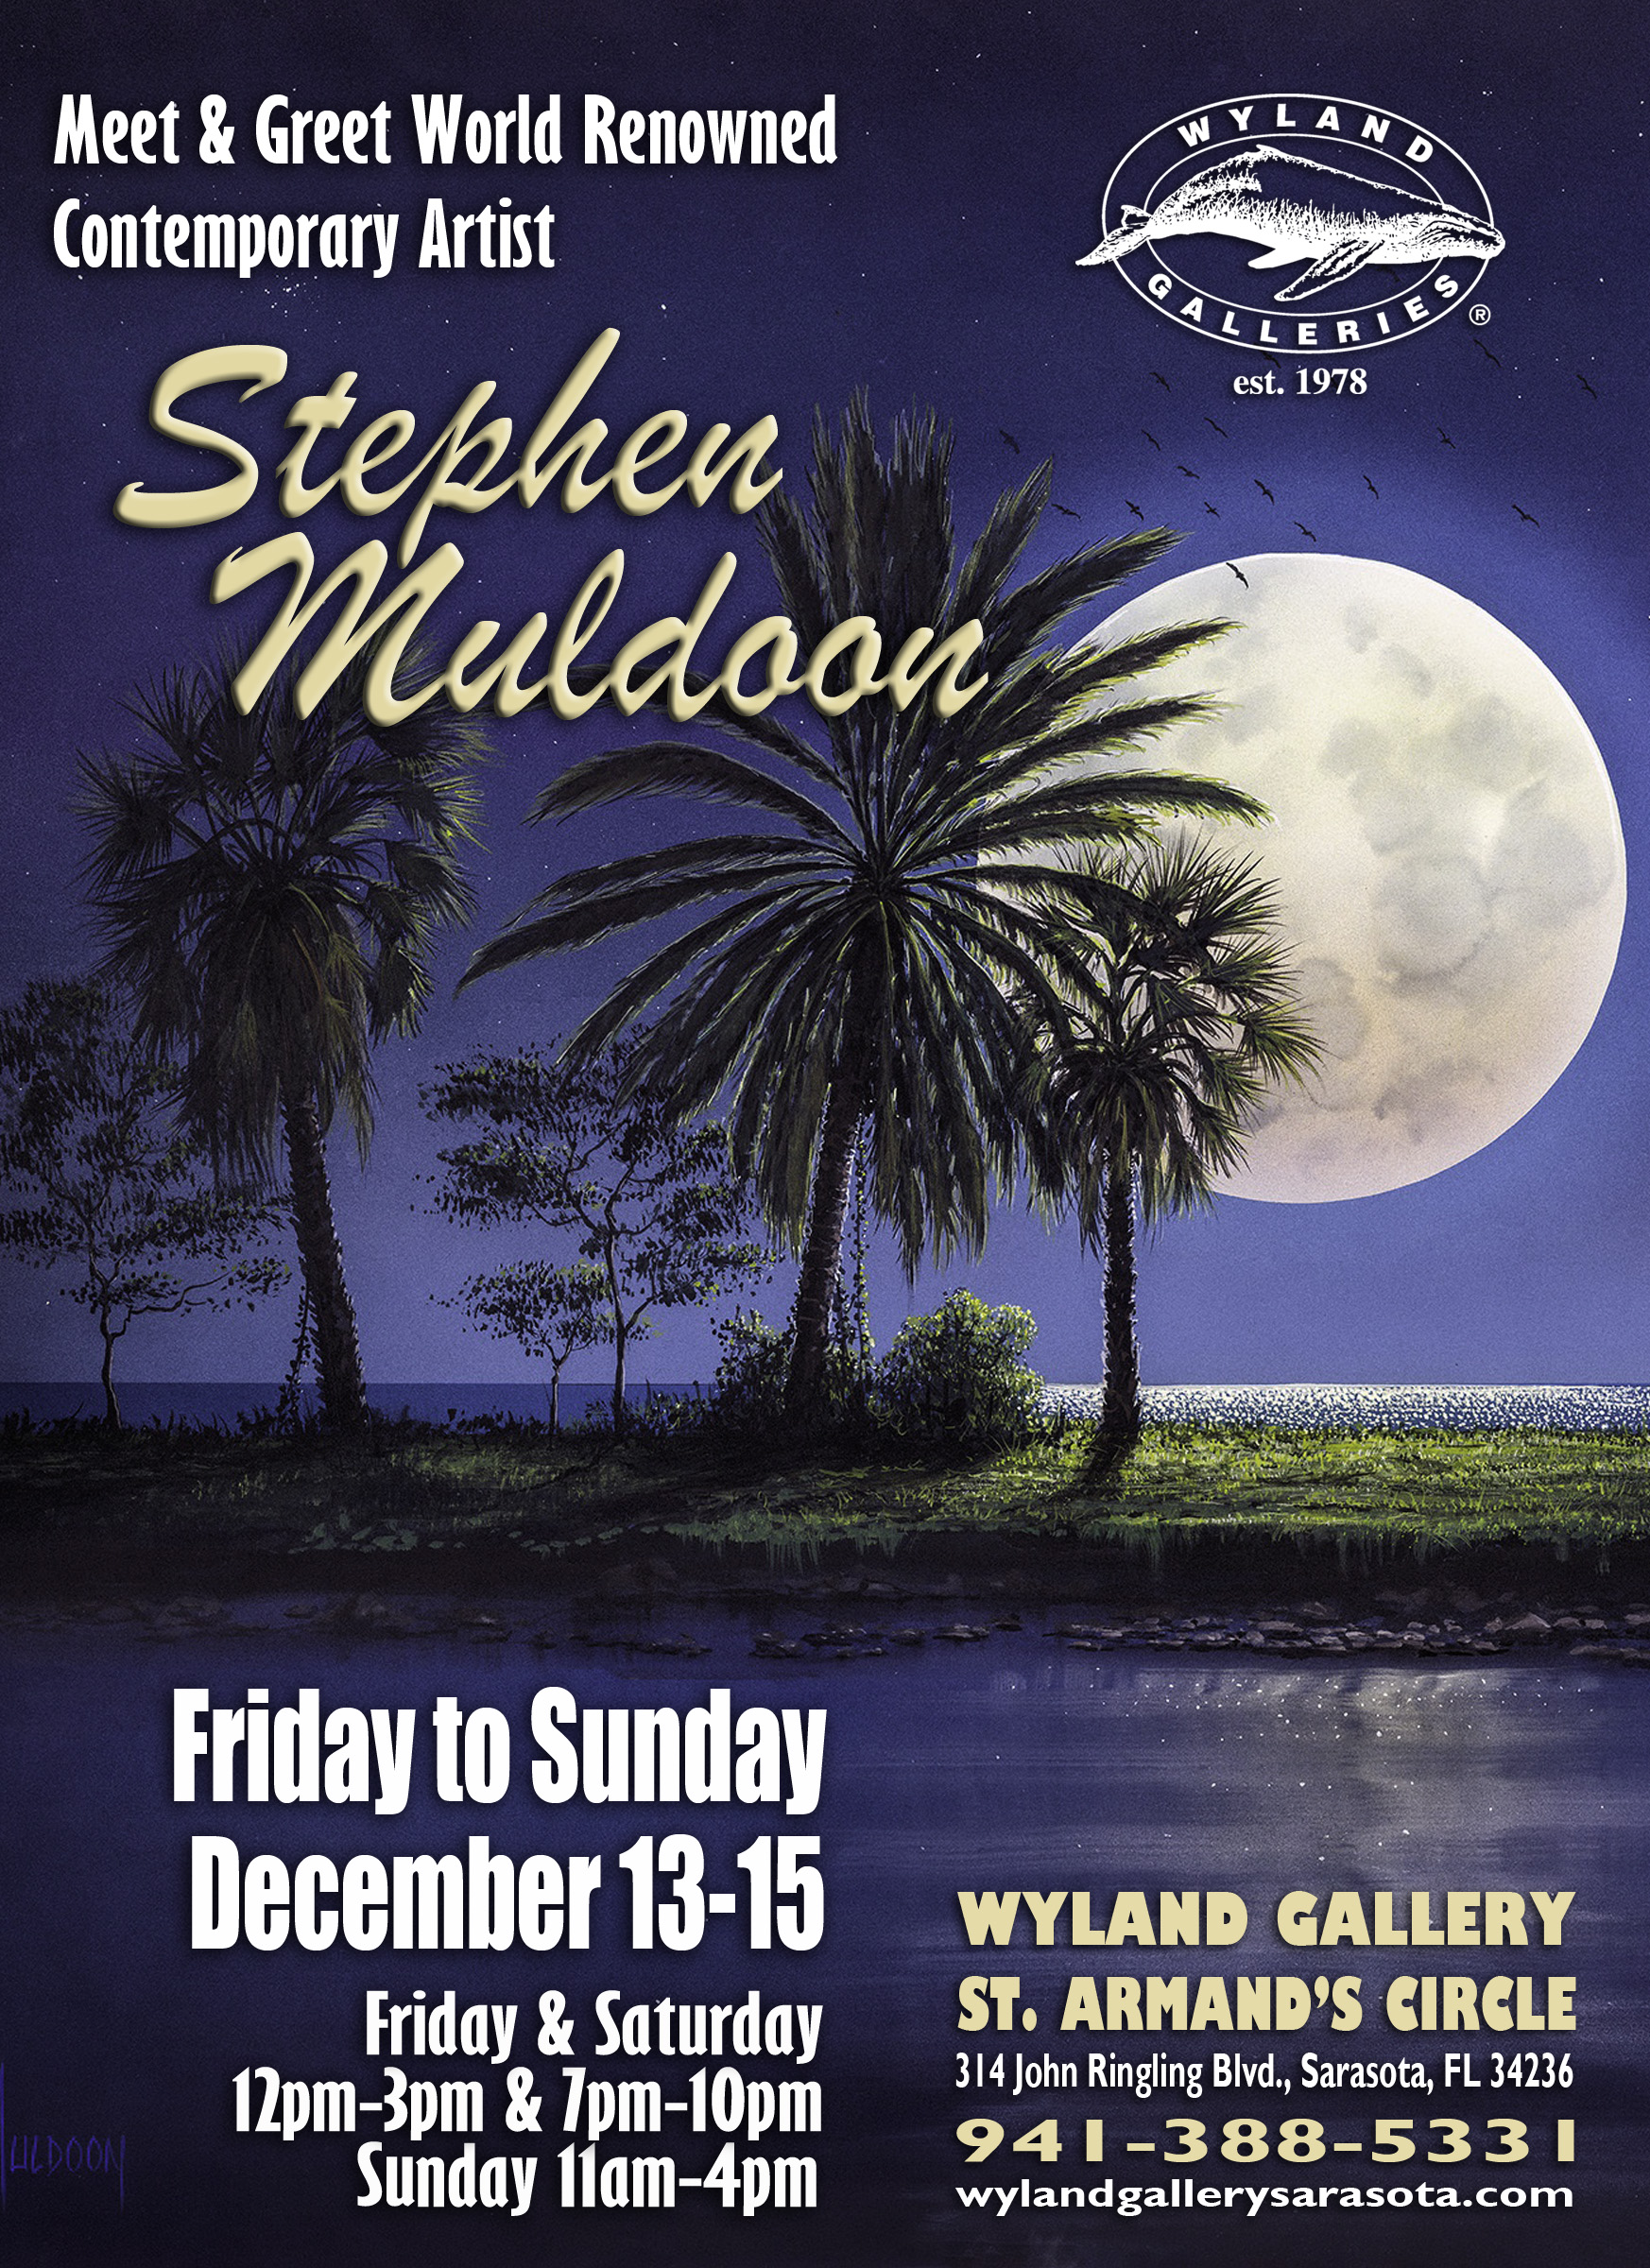 Stephen Muldoon Art Show at Wyland Gallery on St. Armand's Circle